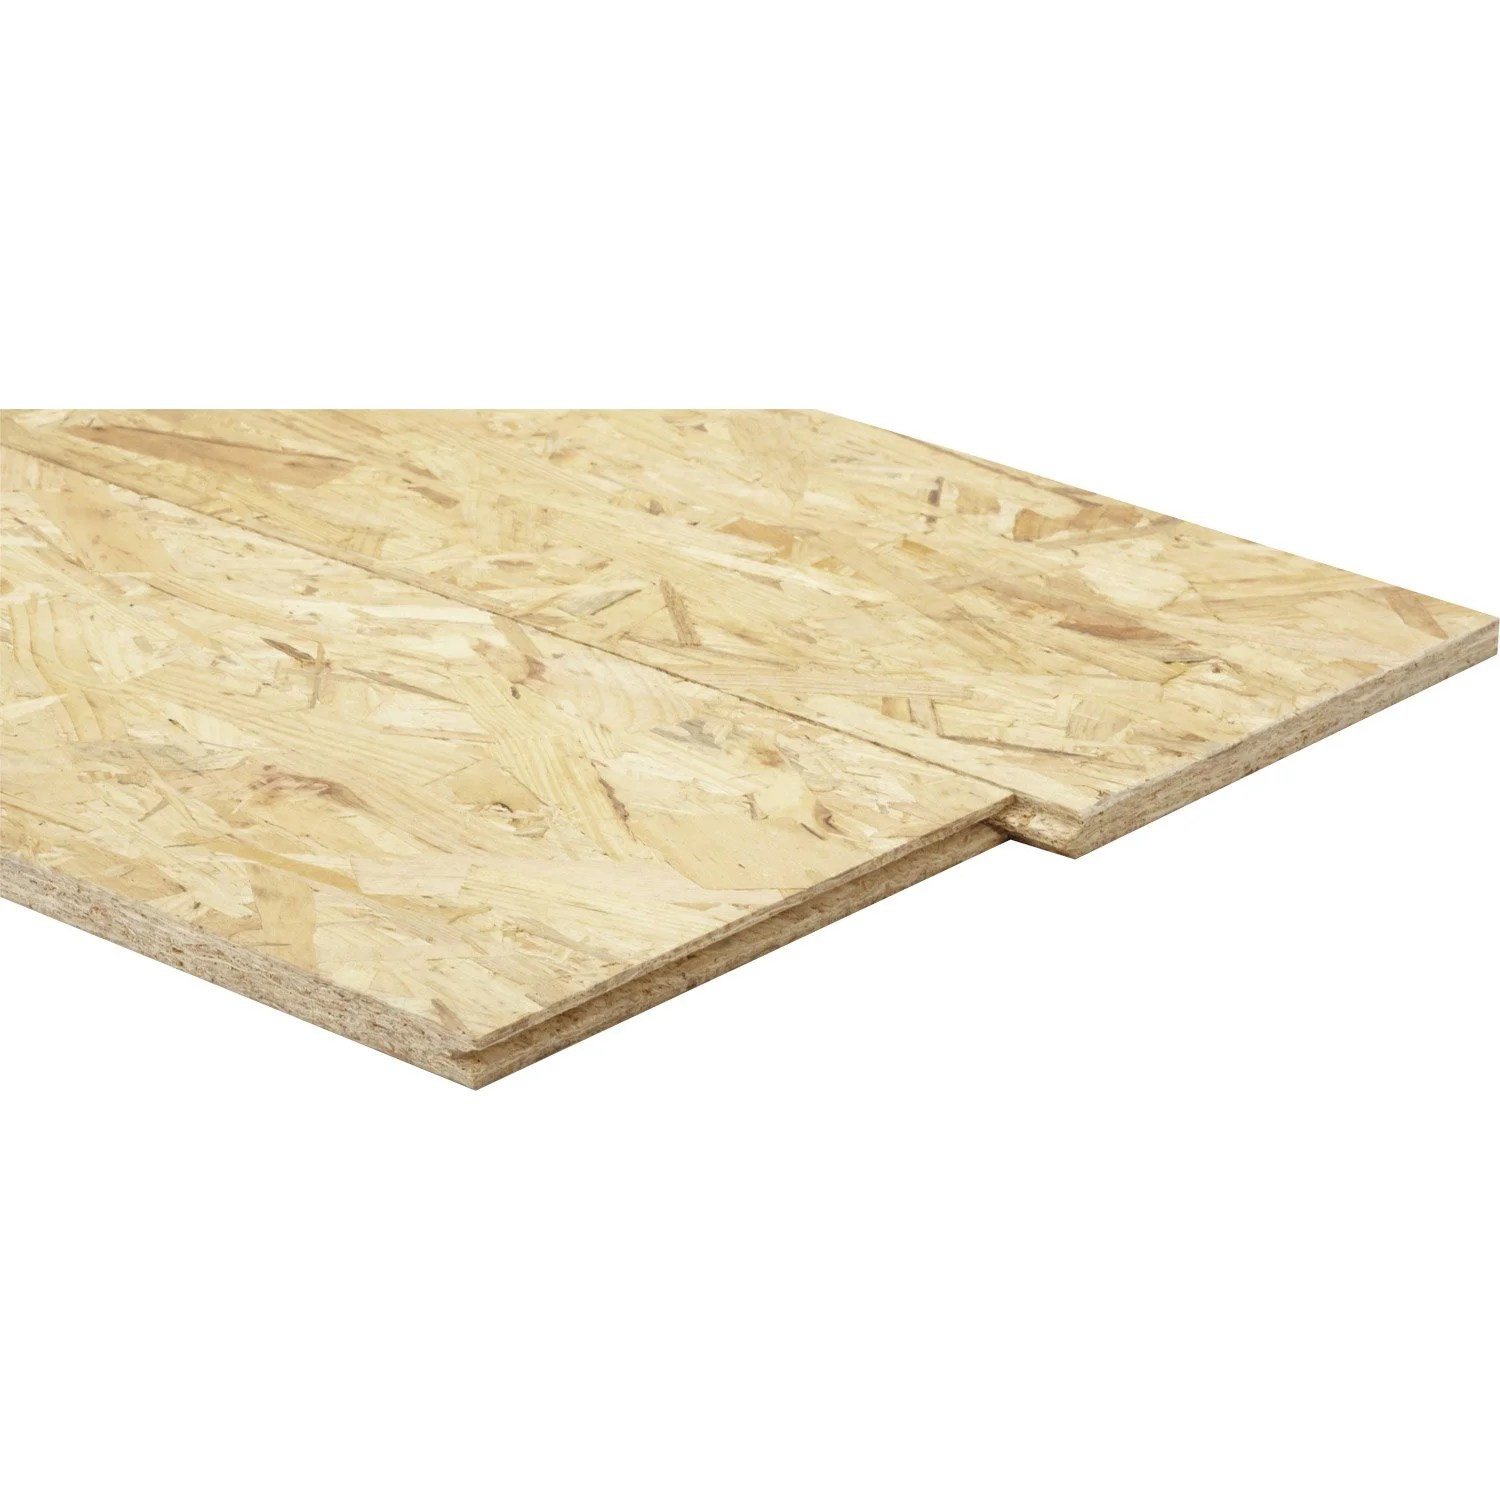 Weldom Lambris Pvc Dalle Osb 1 3 Plis épicéa Naturel Ep 15 Mm X L 205 X L 67 50 Cm